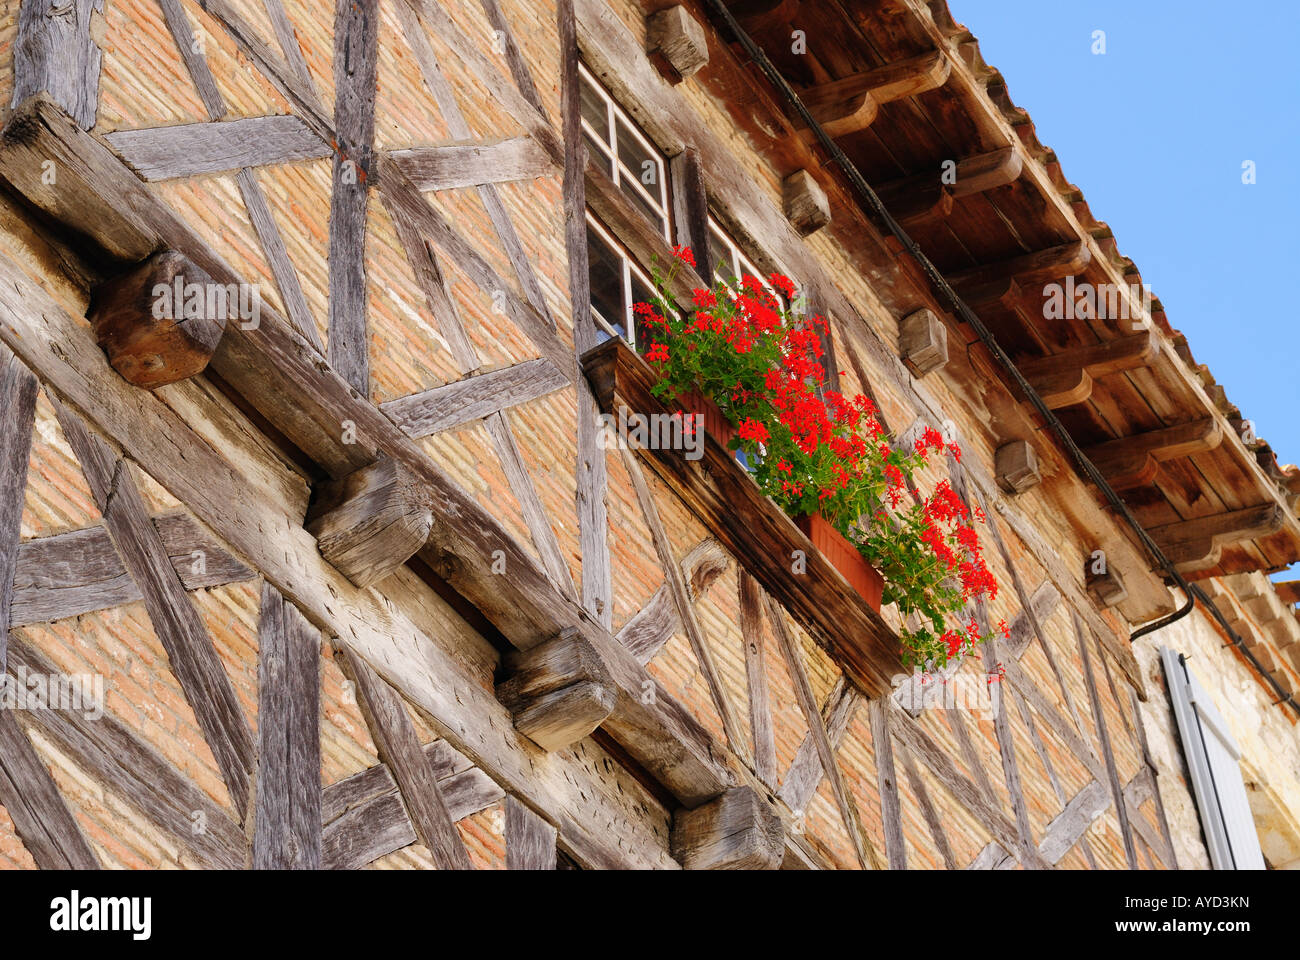 Half-timbered house with window box, Lauzerte, France. Low angle view. - Stock Image